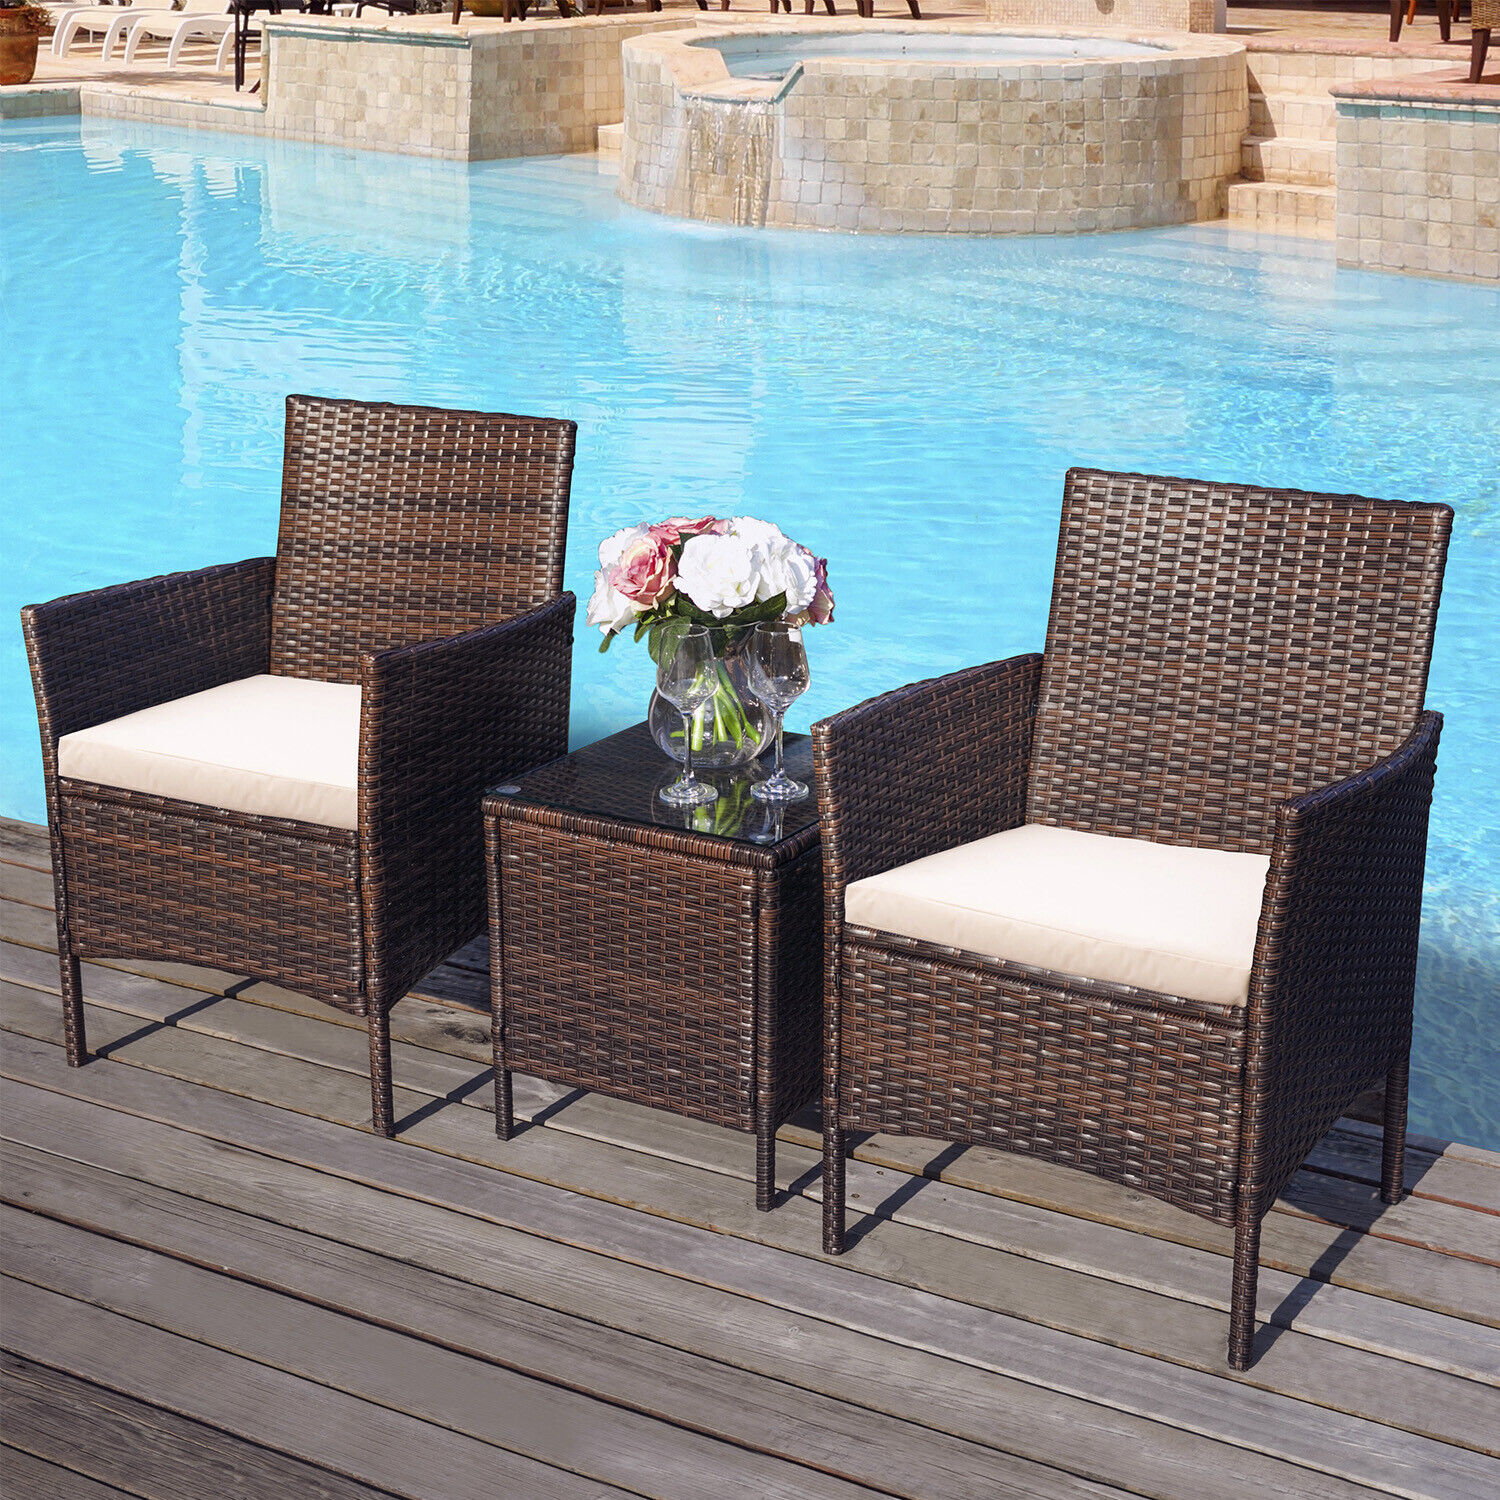 Garden Furniture - 3 Piece Outdoor Rattan Garden Furniture Conservatory Small Set Table and Chair